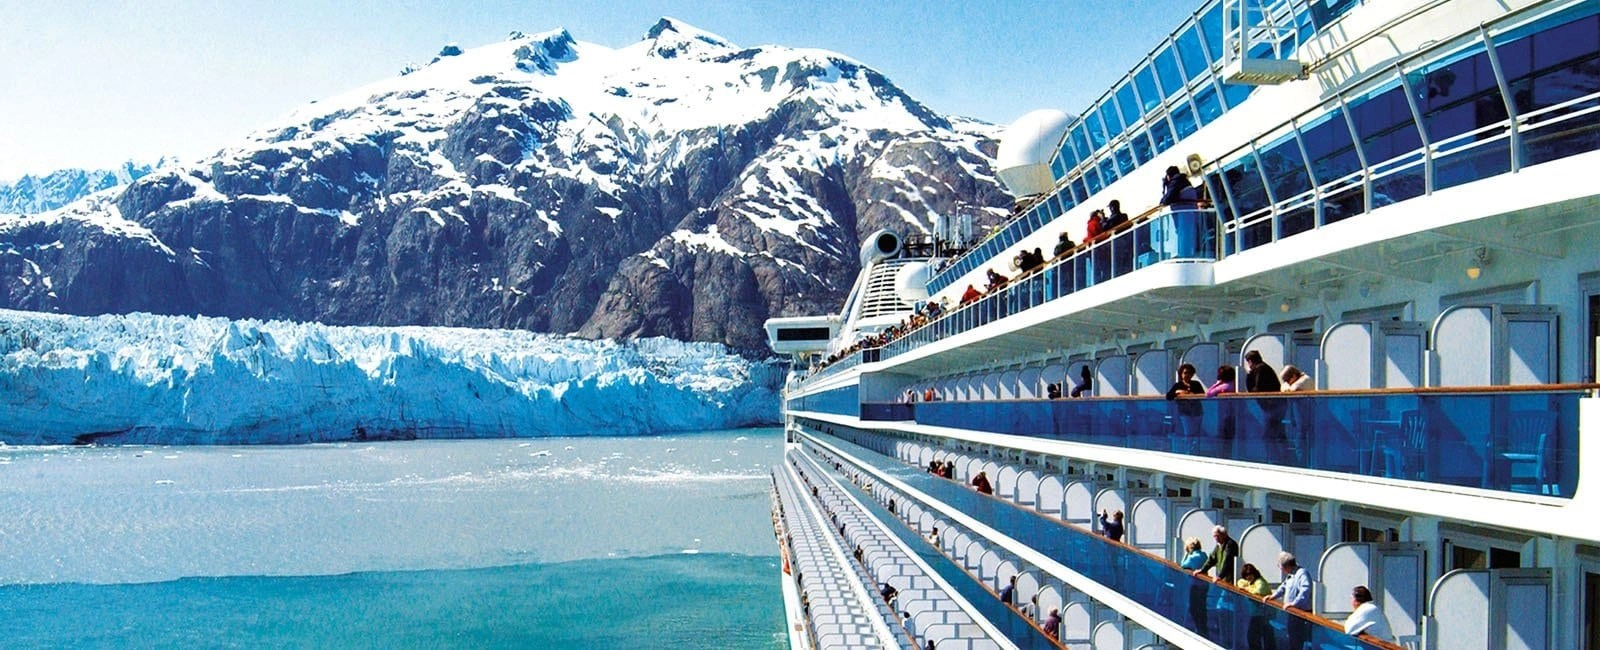 Best Cruises For Families 2020 The Best Alaska Cruise Sailing in 2019 & 2020 | Global Munchkins